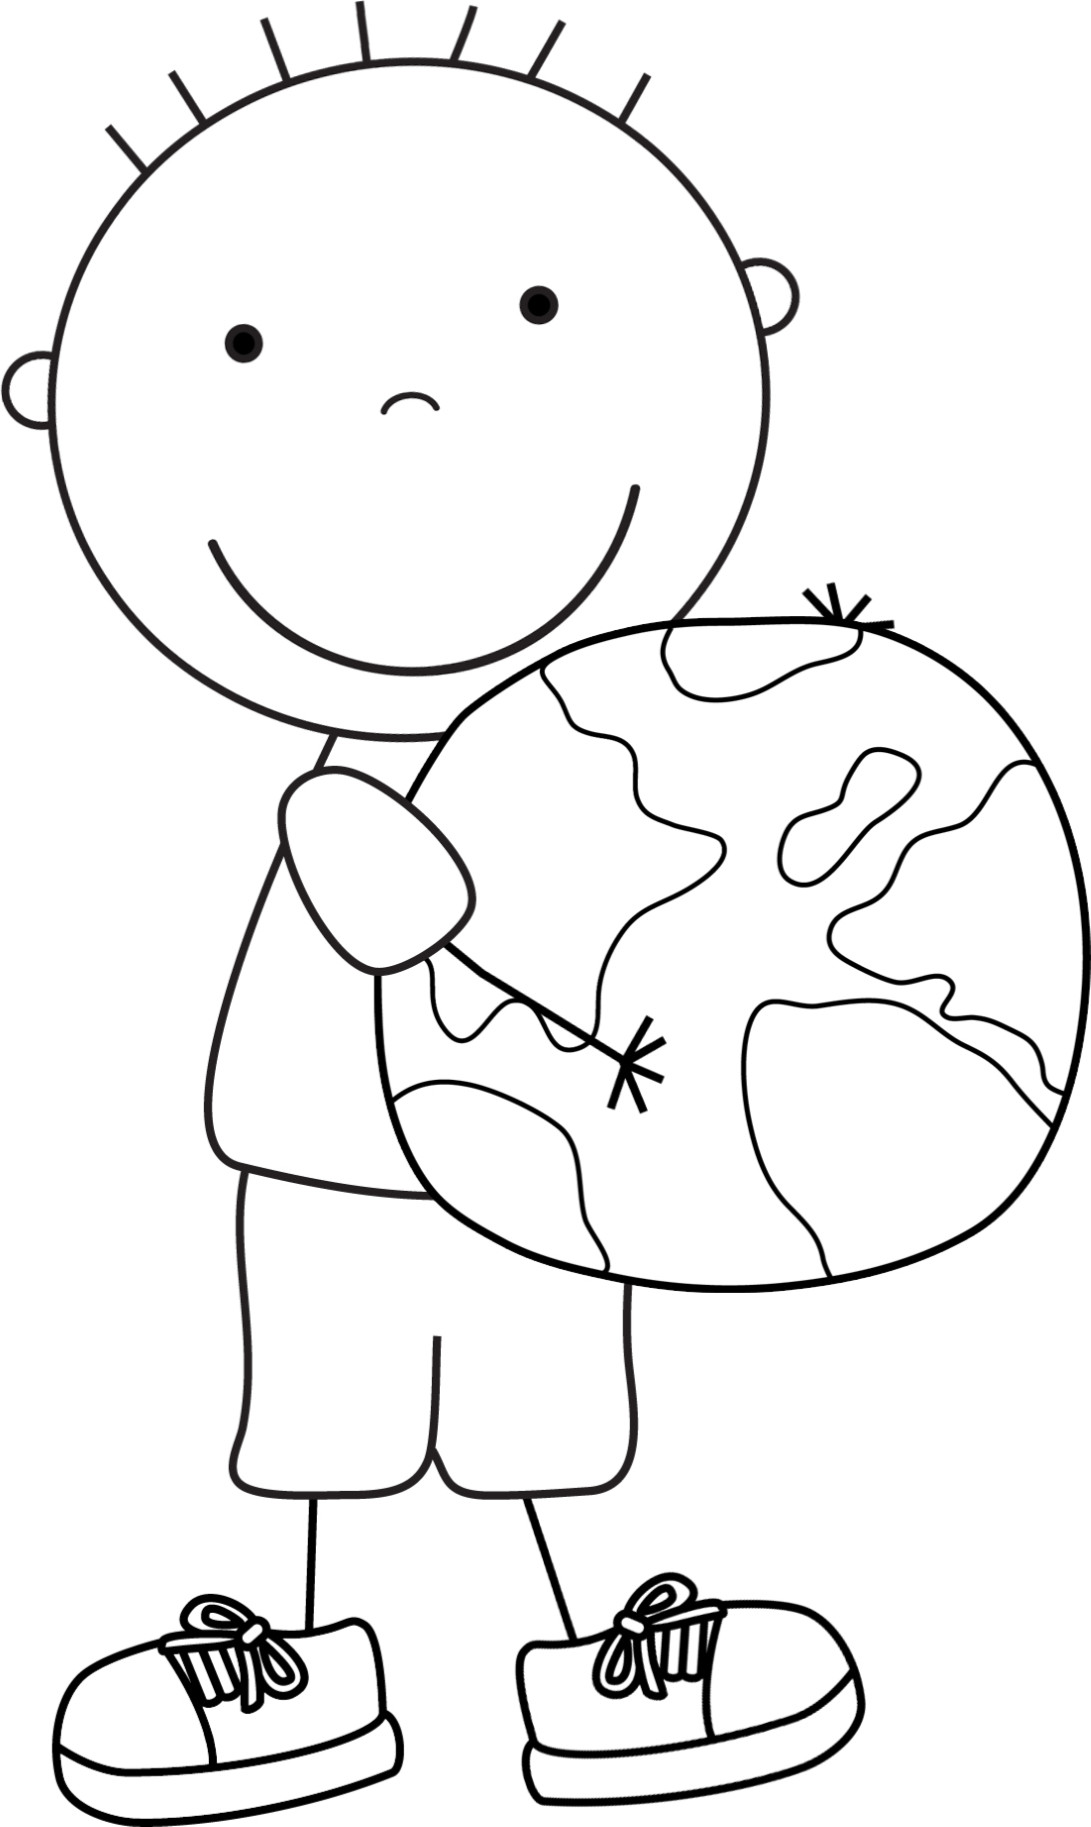 Kids Coloring Pages Performing Arts Boys  Color Pages for Kids Earth Day Boys